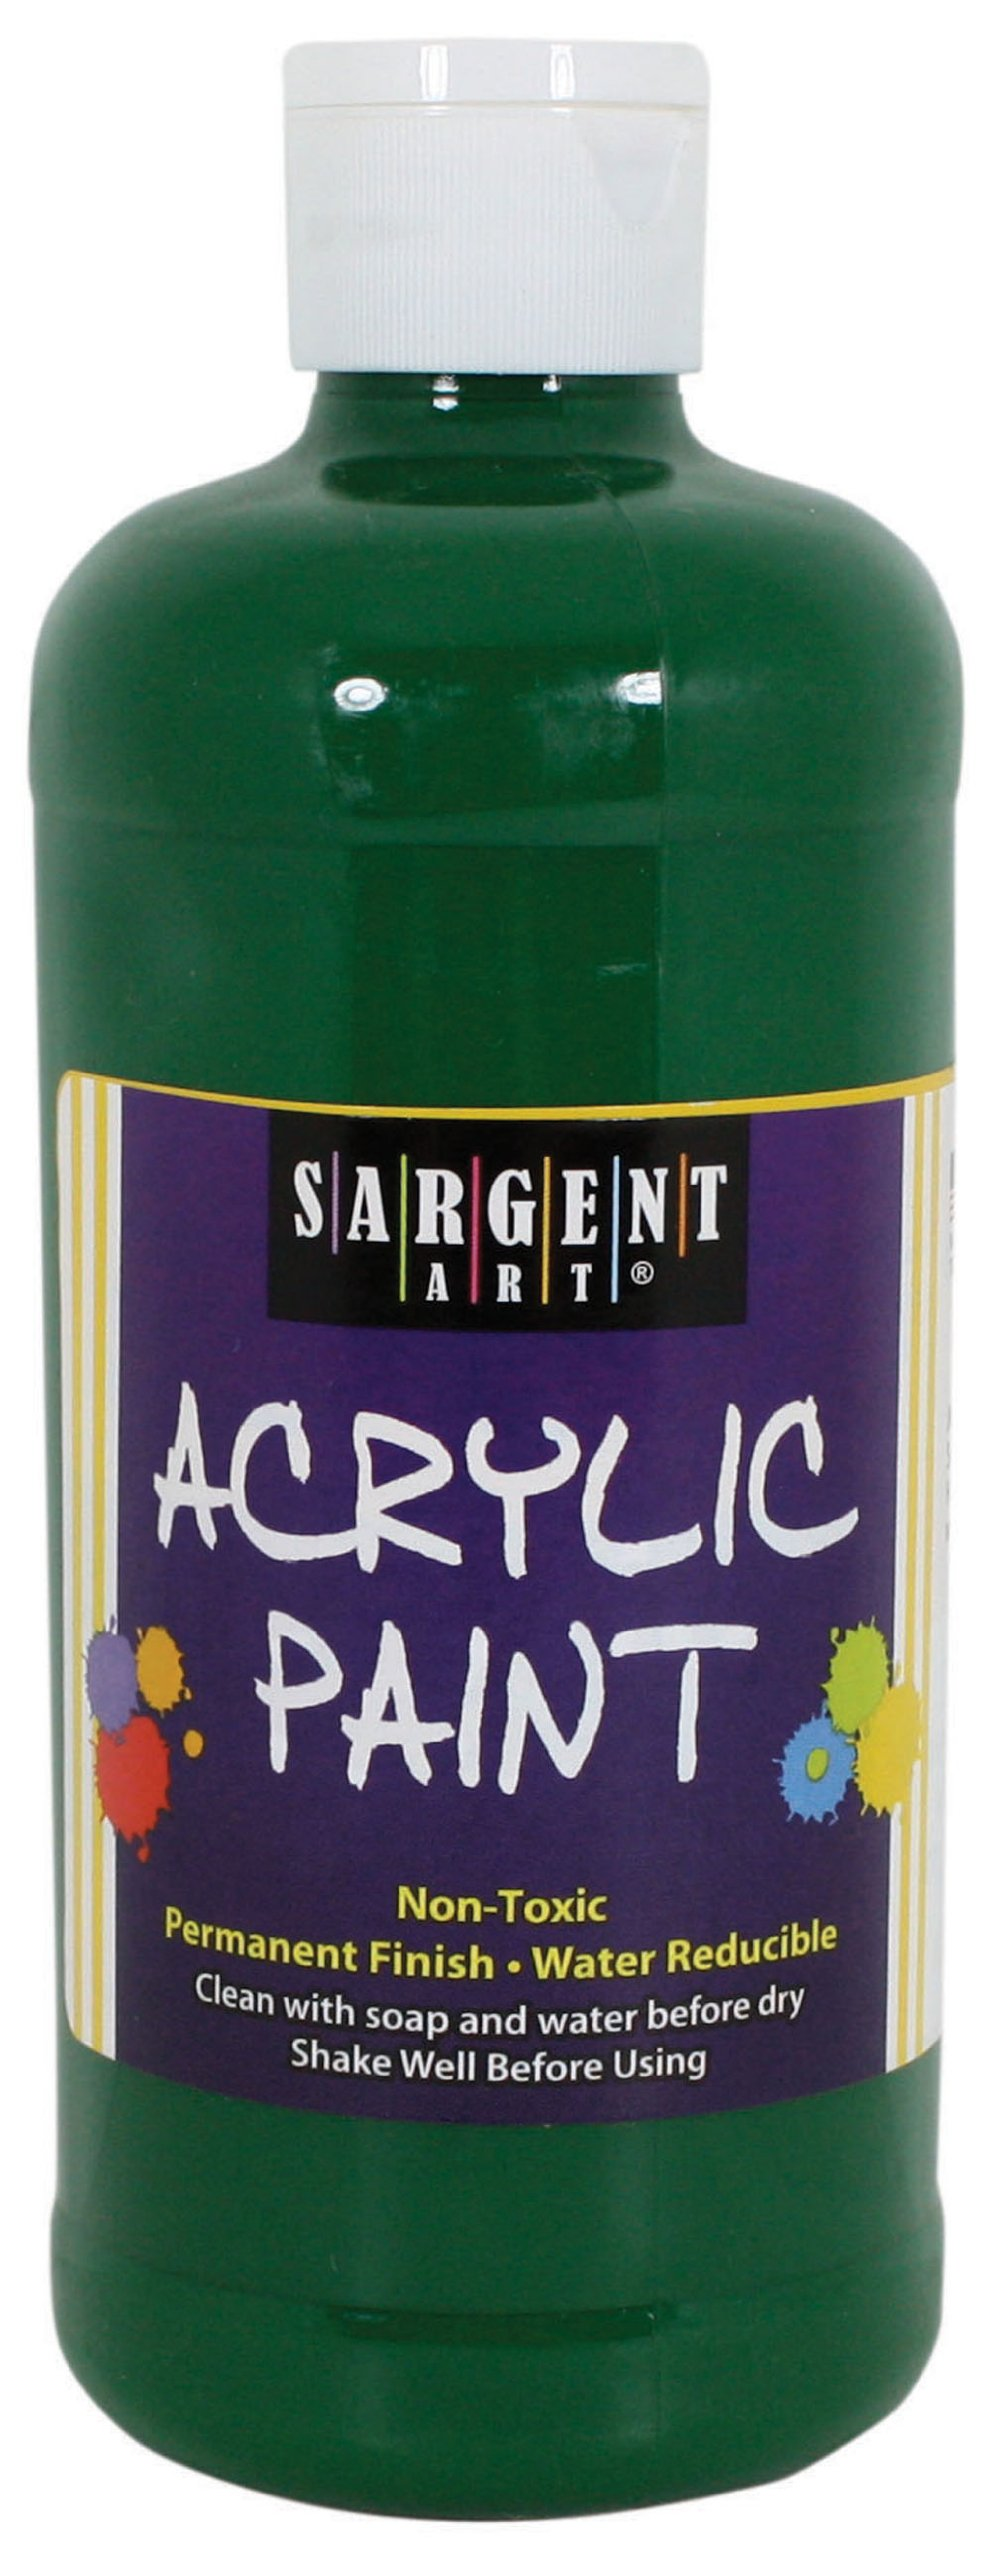 Sargent Art 24-2466 16-Ounce Acrylic Paint, Green